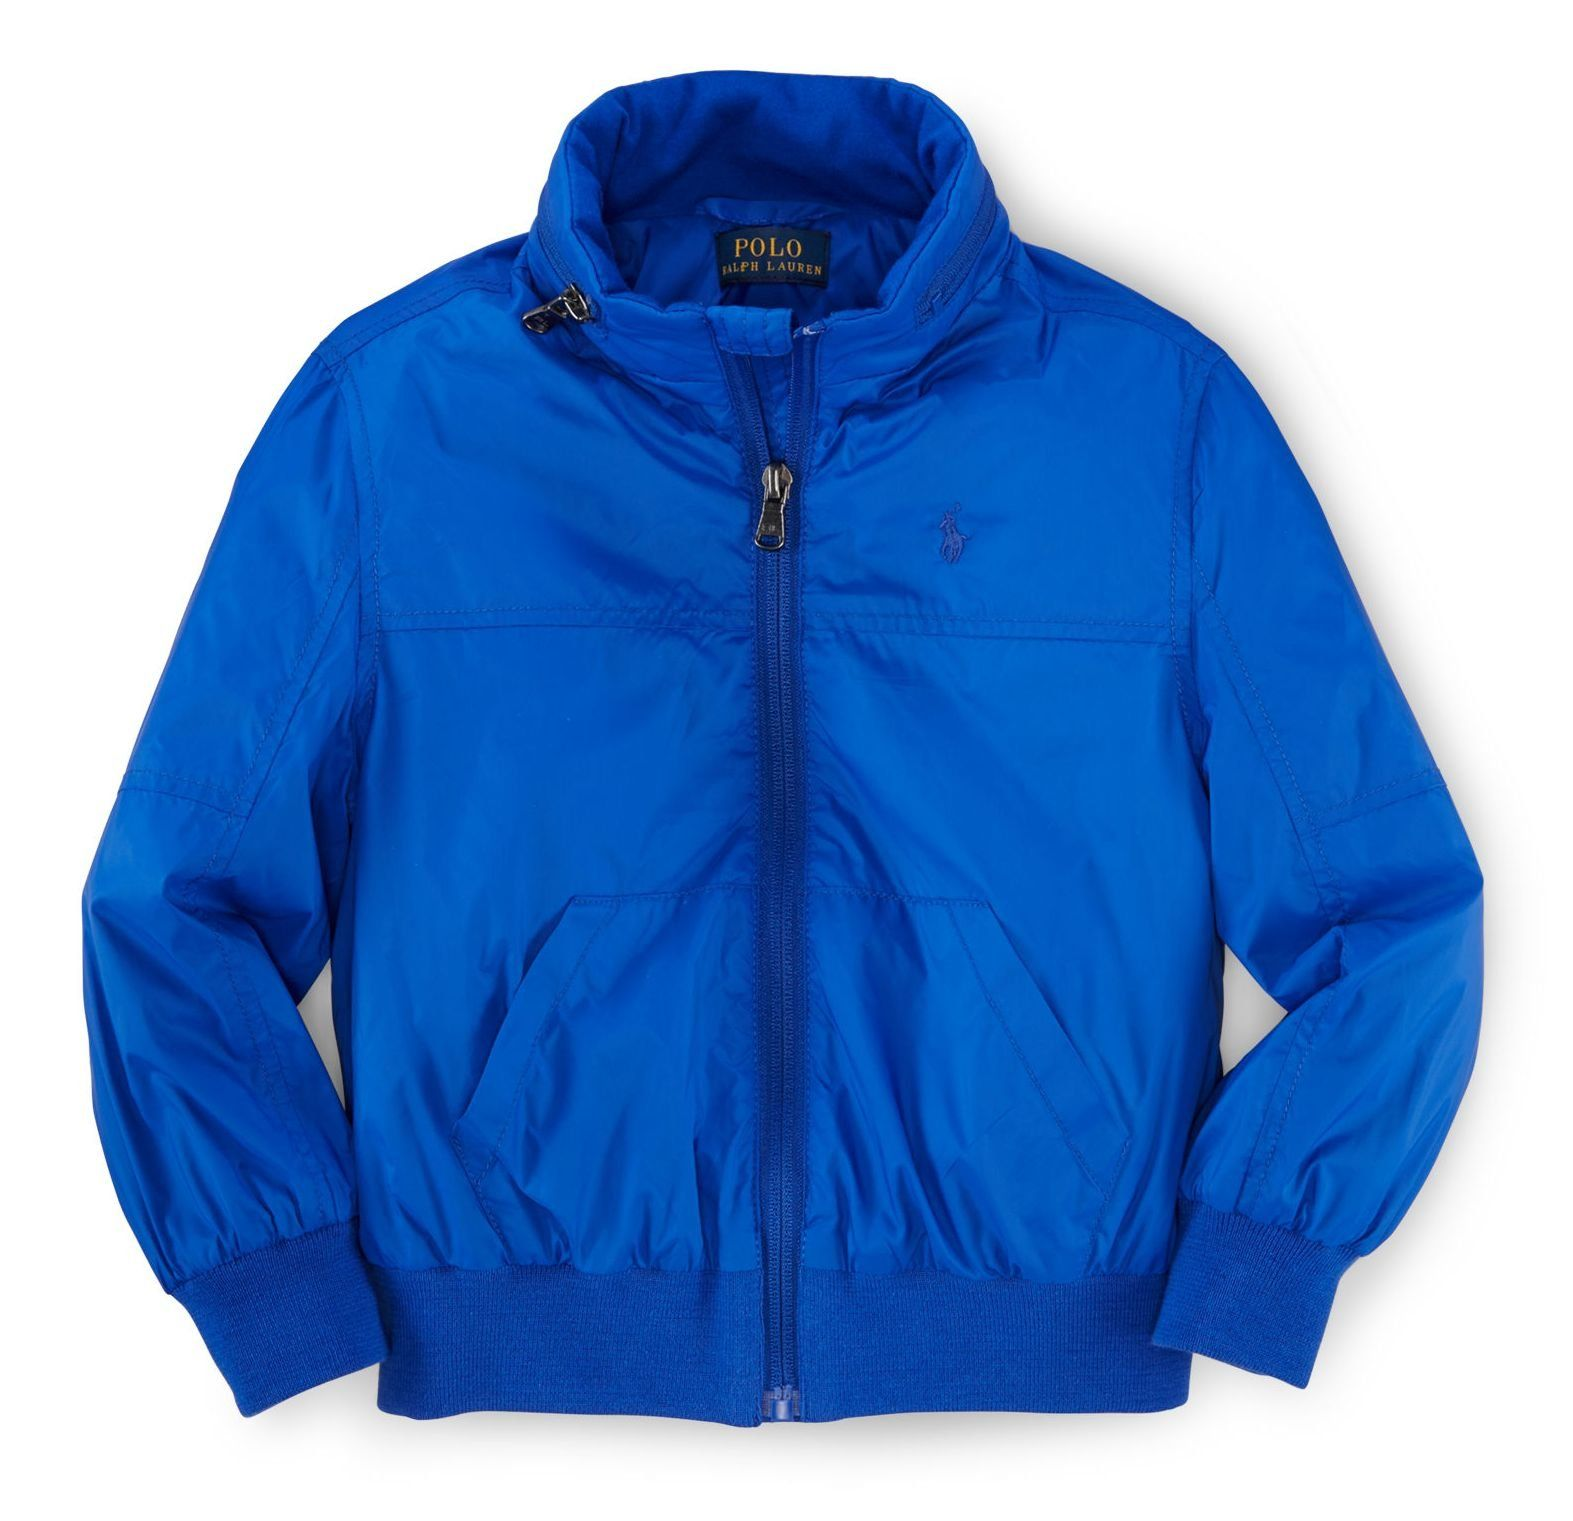 Ralph Lauren Polo Boys Pack Away Hooded Windbreaker Jacket (5 ). Machine washable. Signature embroidered pony at the left chest. Full-zip front. Hood packs away into the zip mockneck. Long sleeves with ribbed cuffs. Split kangaroo pocket. Ribbed hem.